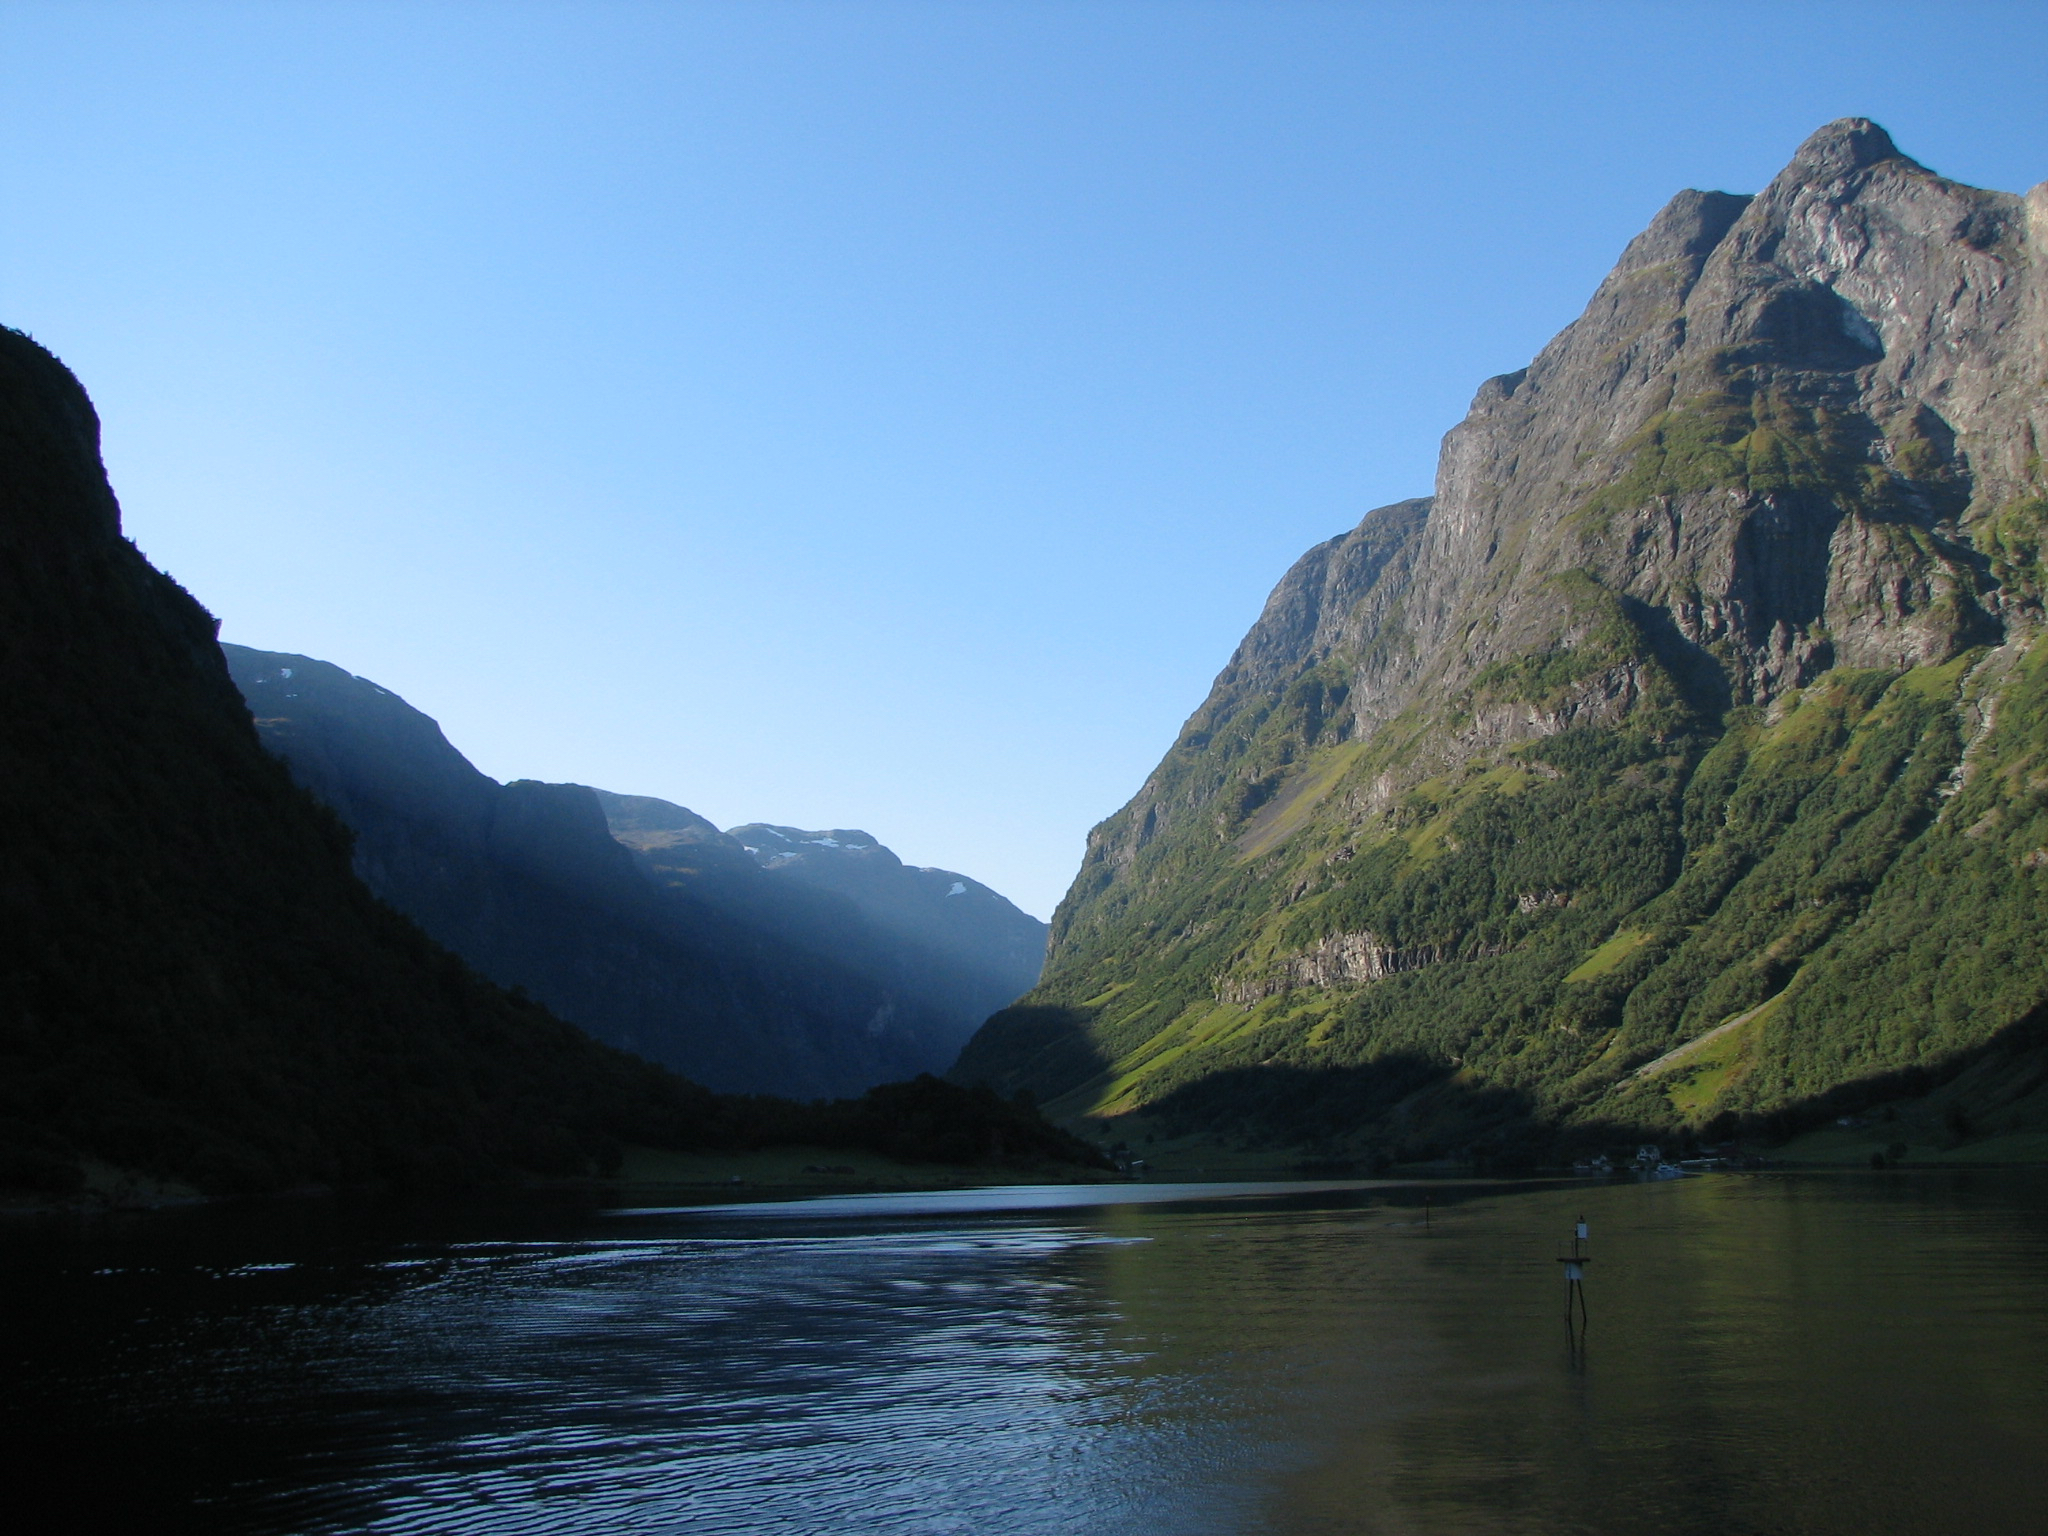 There's a reason why tourists love this fjord. So do I.